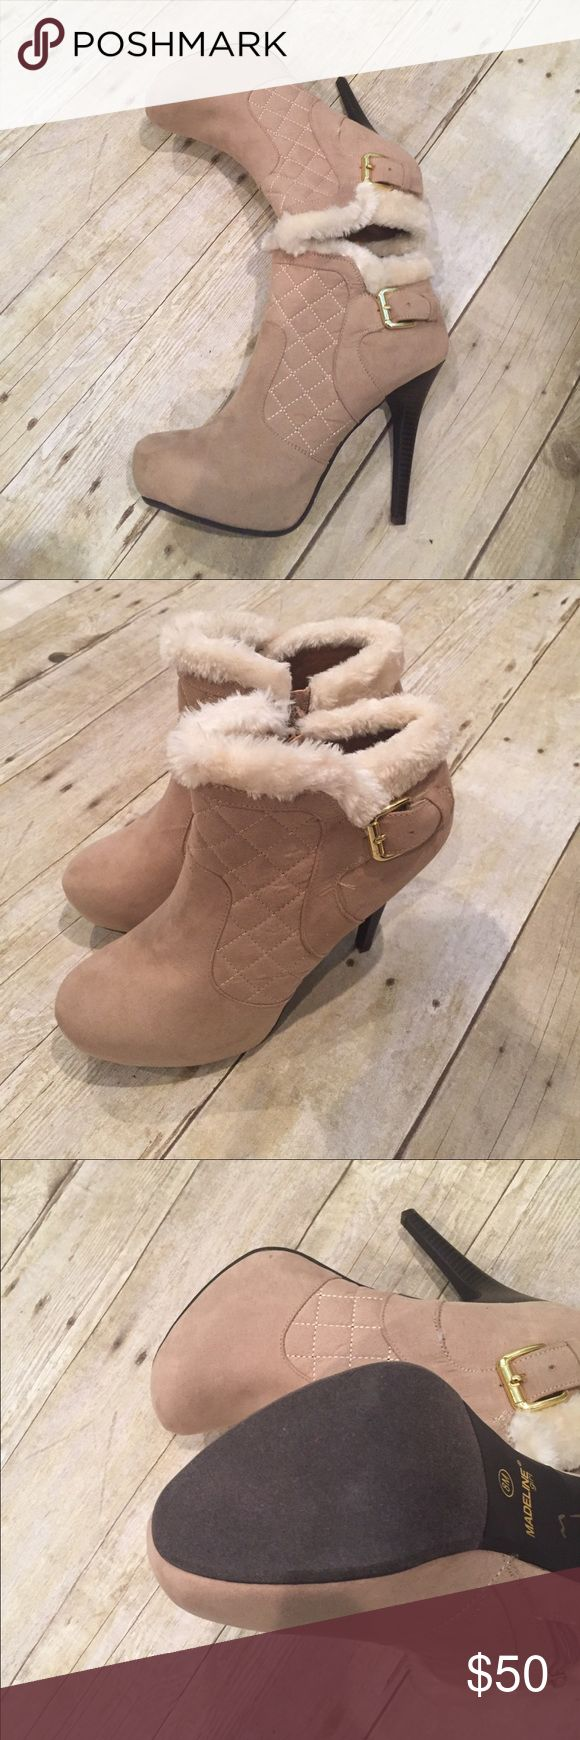 👠BUY ONLY BUTTON👠ankle  boots with heels size 8 Beige fuzzy ankle boots with heels size 8 🎉AMAZING PRICE! 🎉retail 85.00 Shoes Heeled Boots